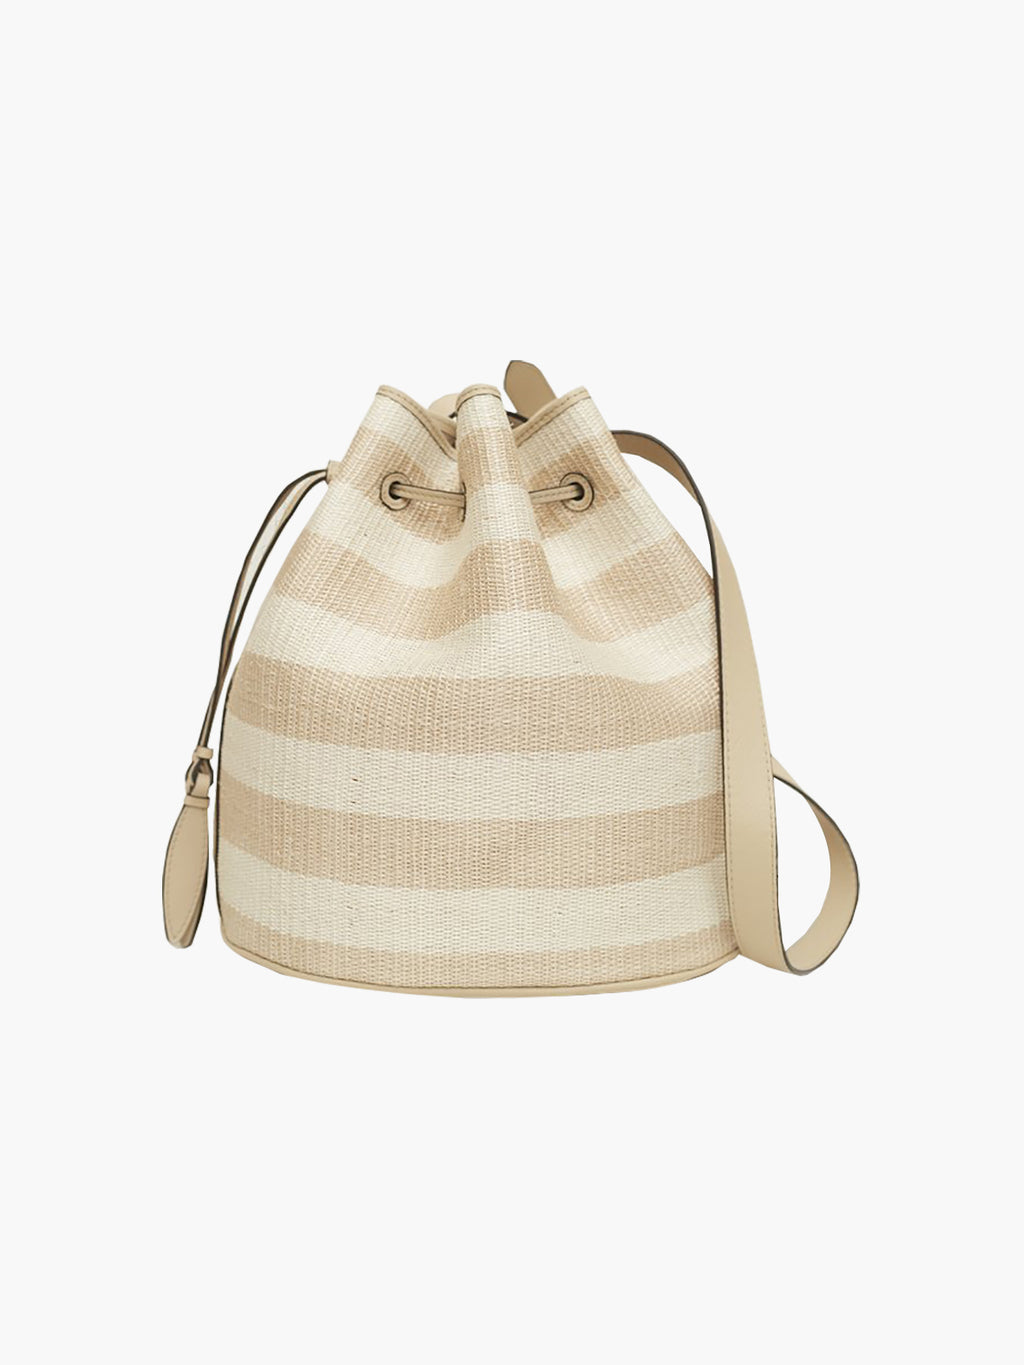 Extra Large Drawstring Bag | Oyster Stripe